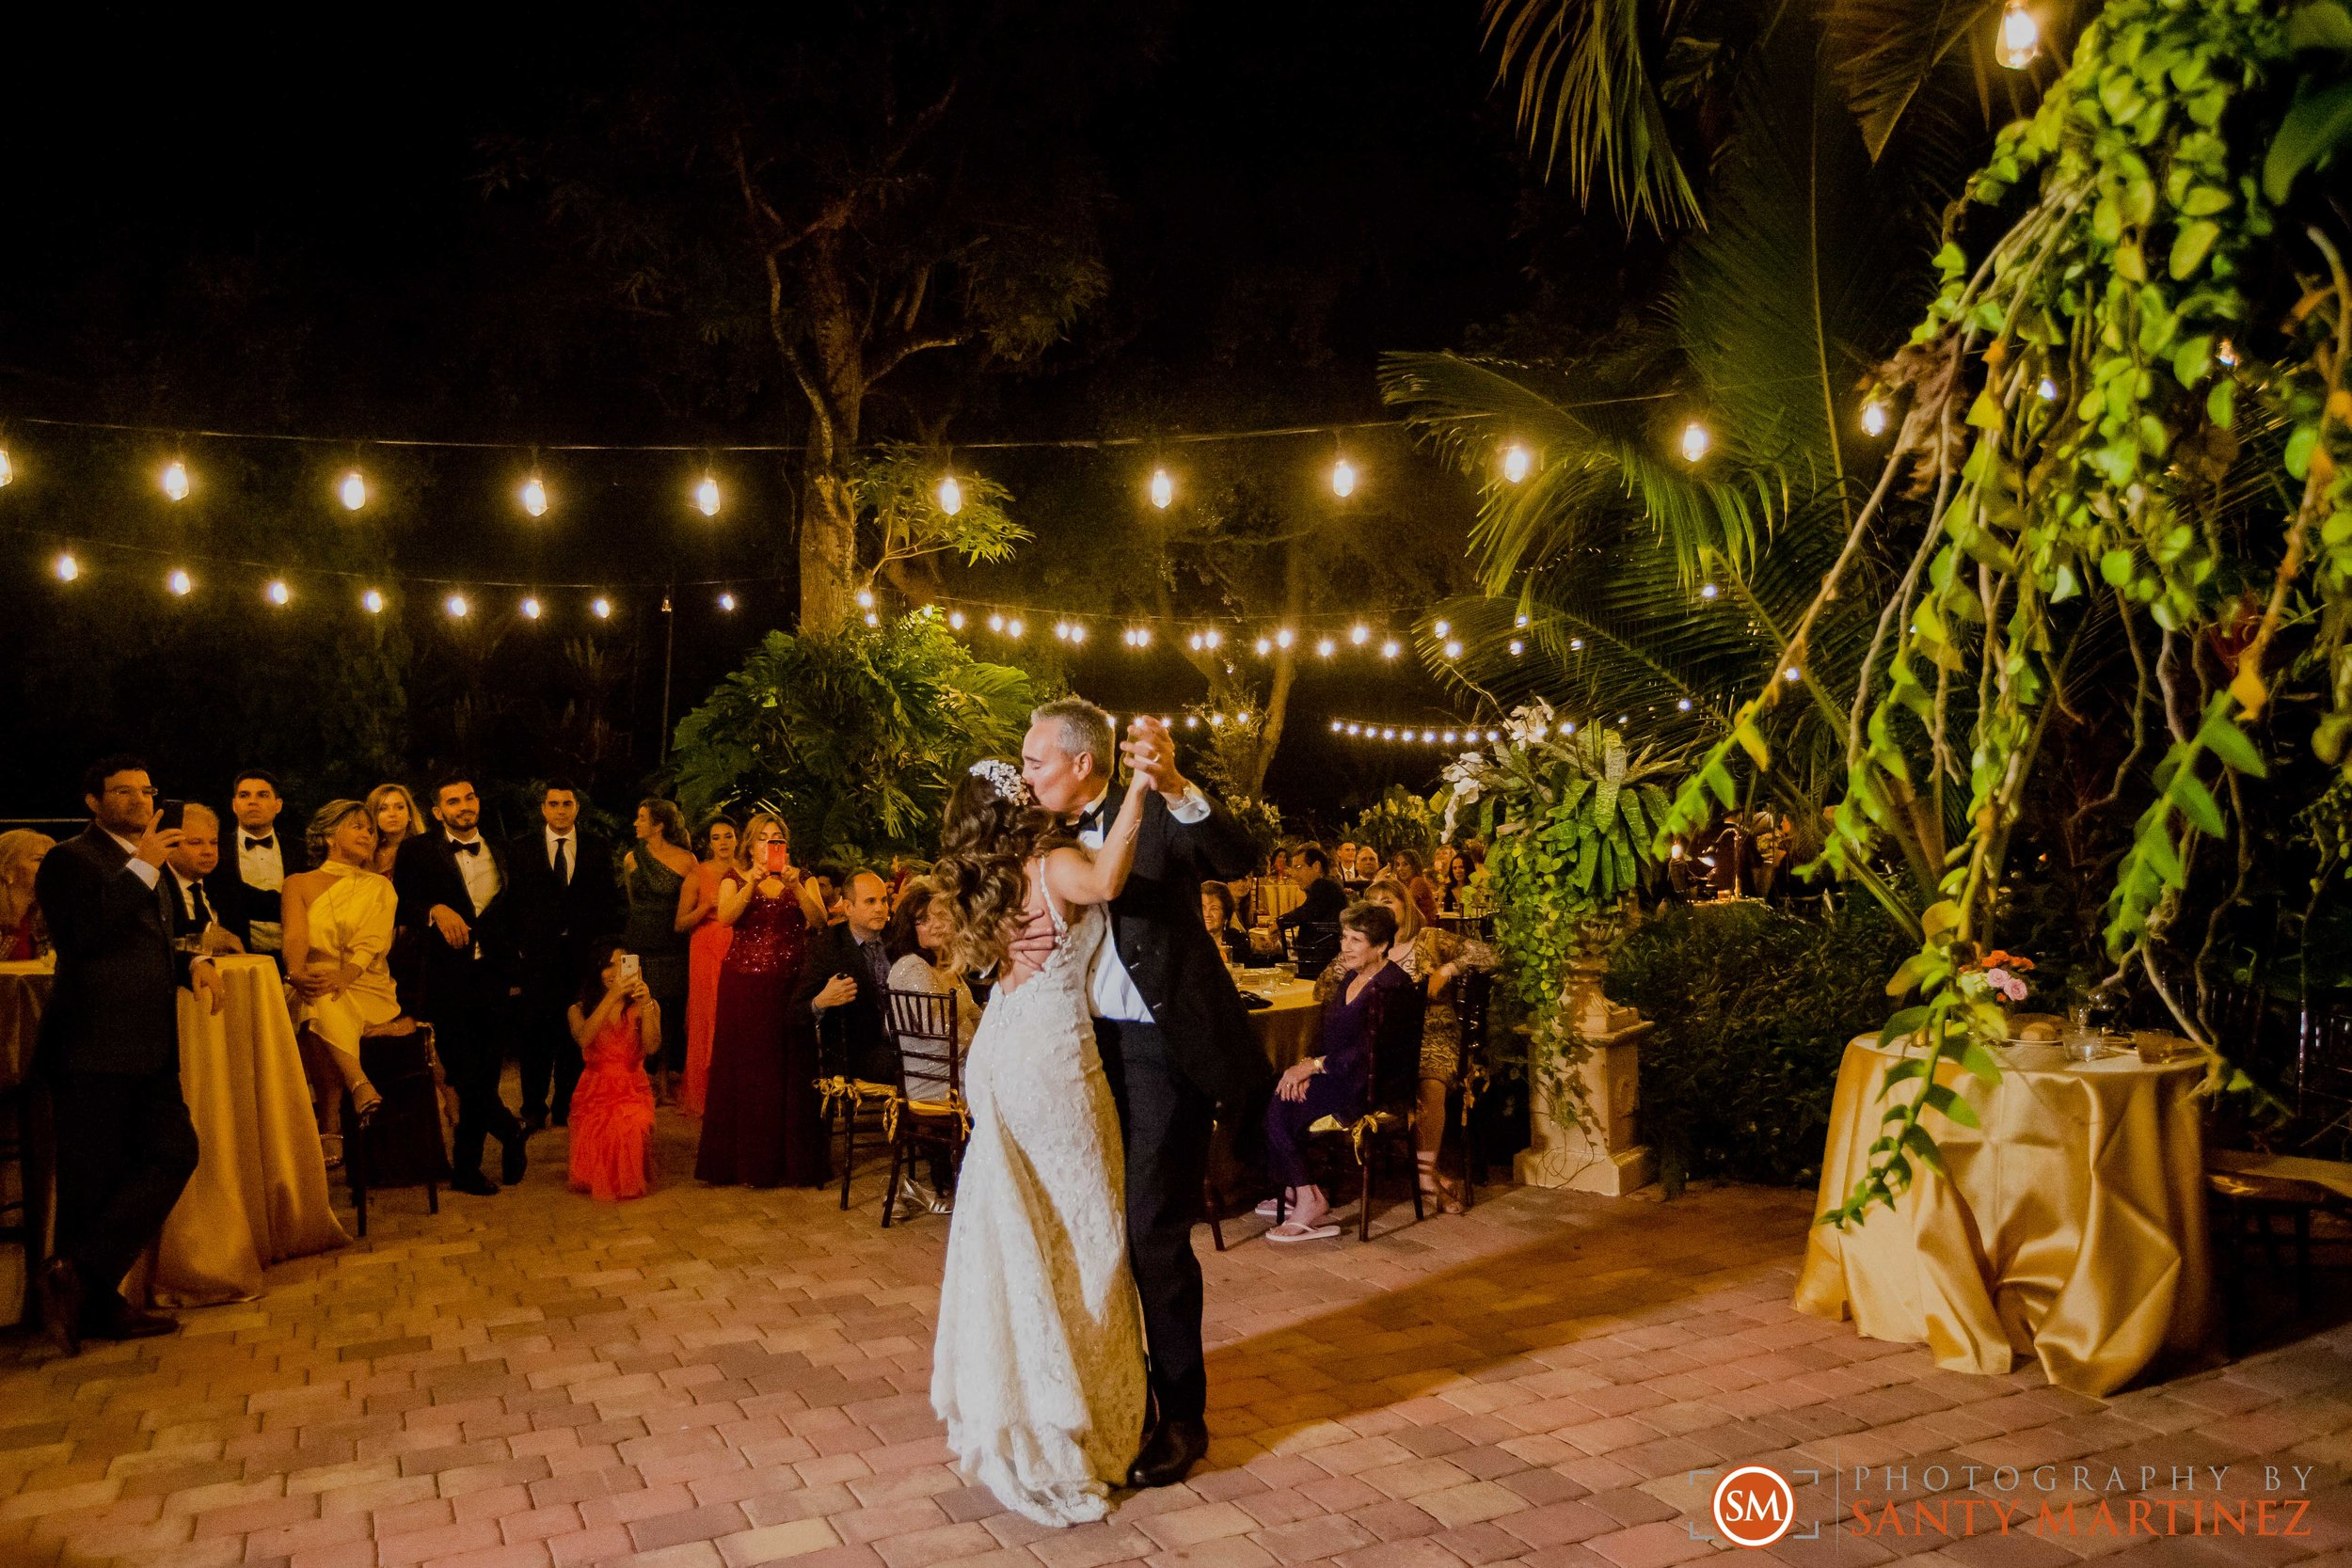 Wedding+at+the+The+Miller+Plantation+-+Santy+Martinez-45.jpg